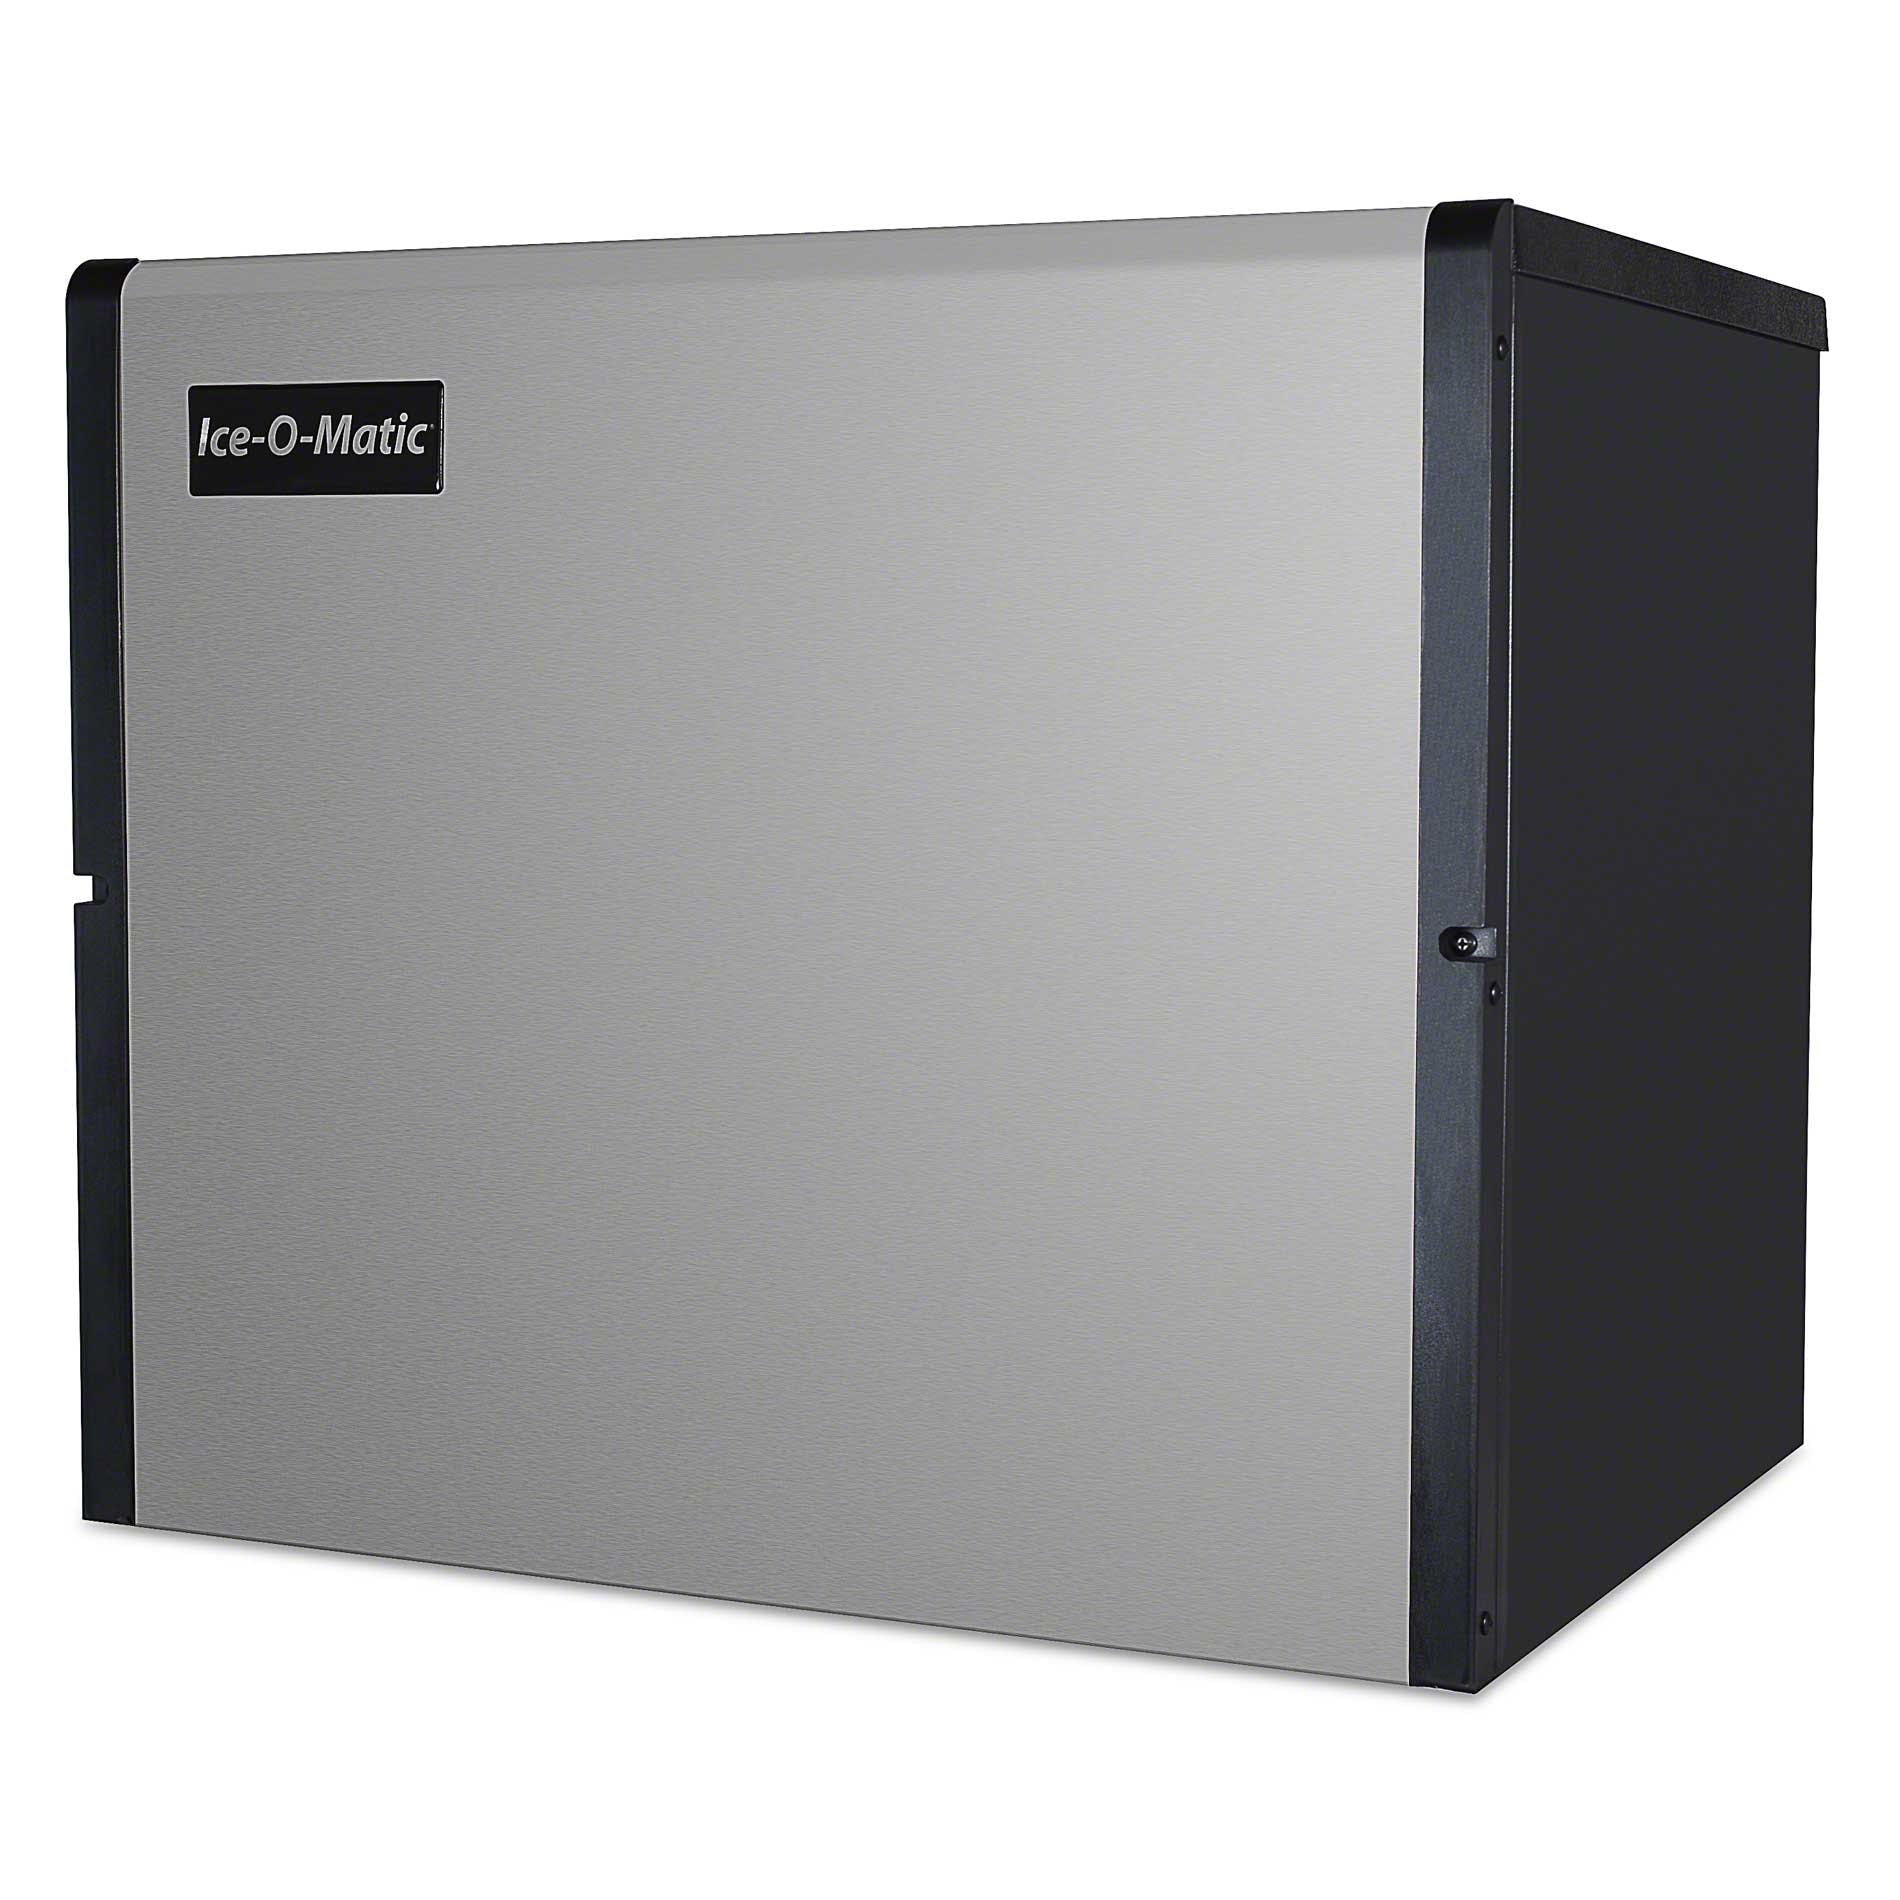 Ice-O-Matic - ICE1006FW 960 lb Full Cube Ice Machine - sold by Food Service Warehouse